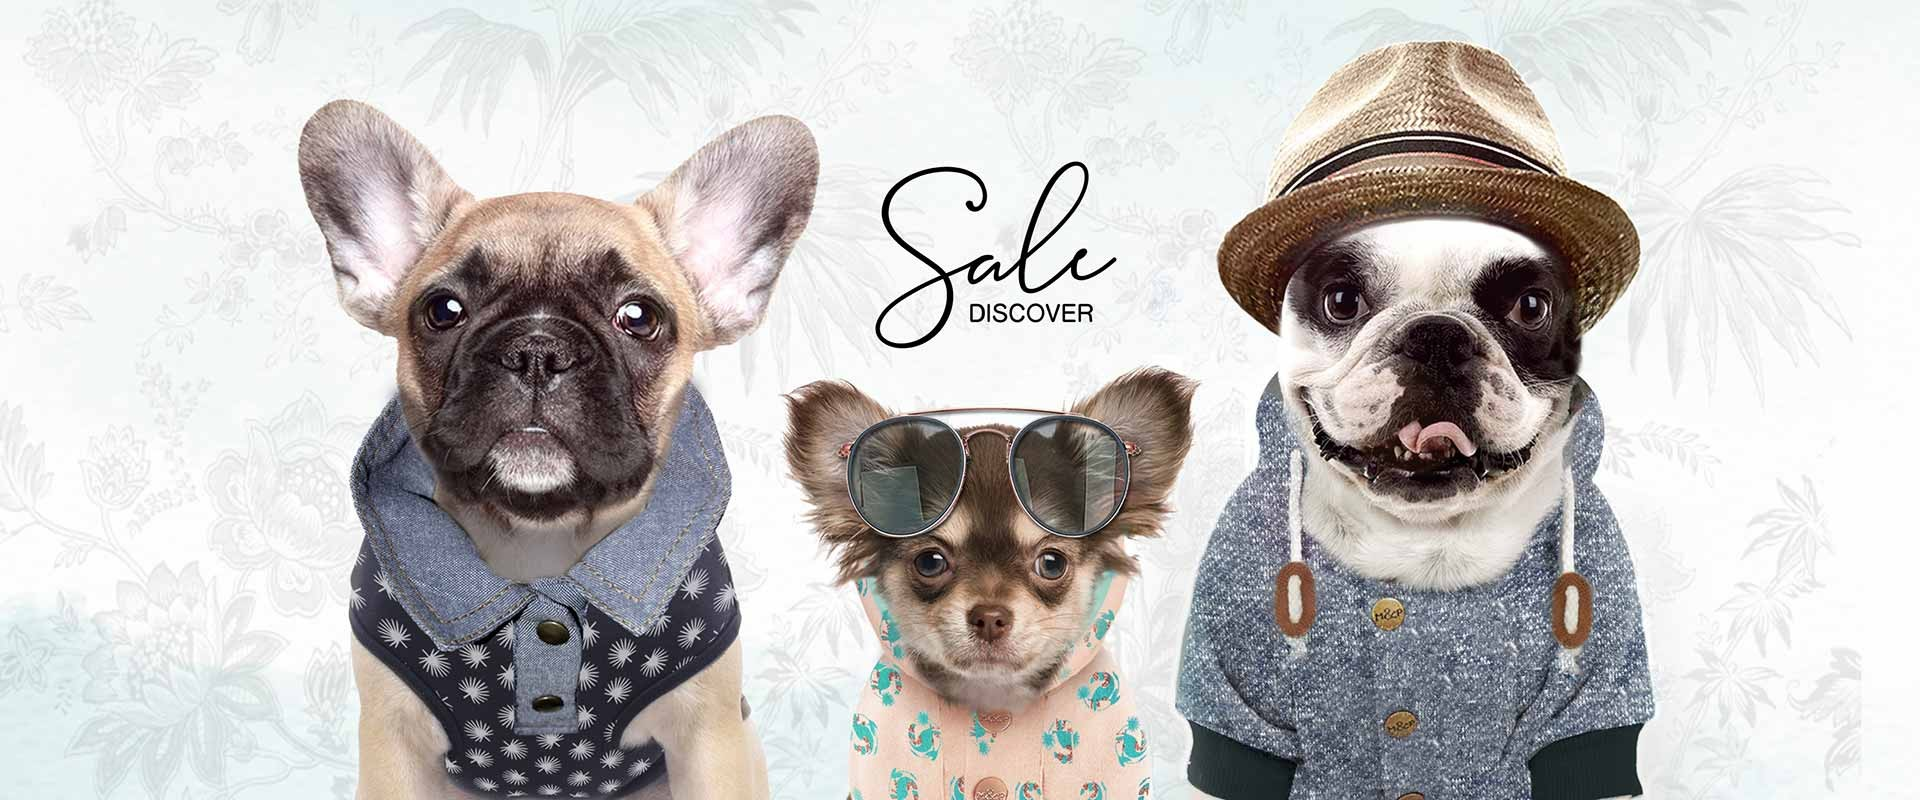 Milk & Pepper, Fashion And Accessories For Dogs & Cats - SUMMER 19 SALES